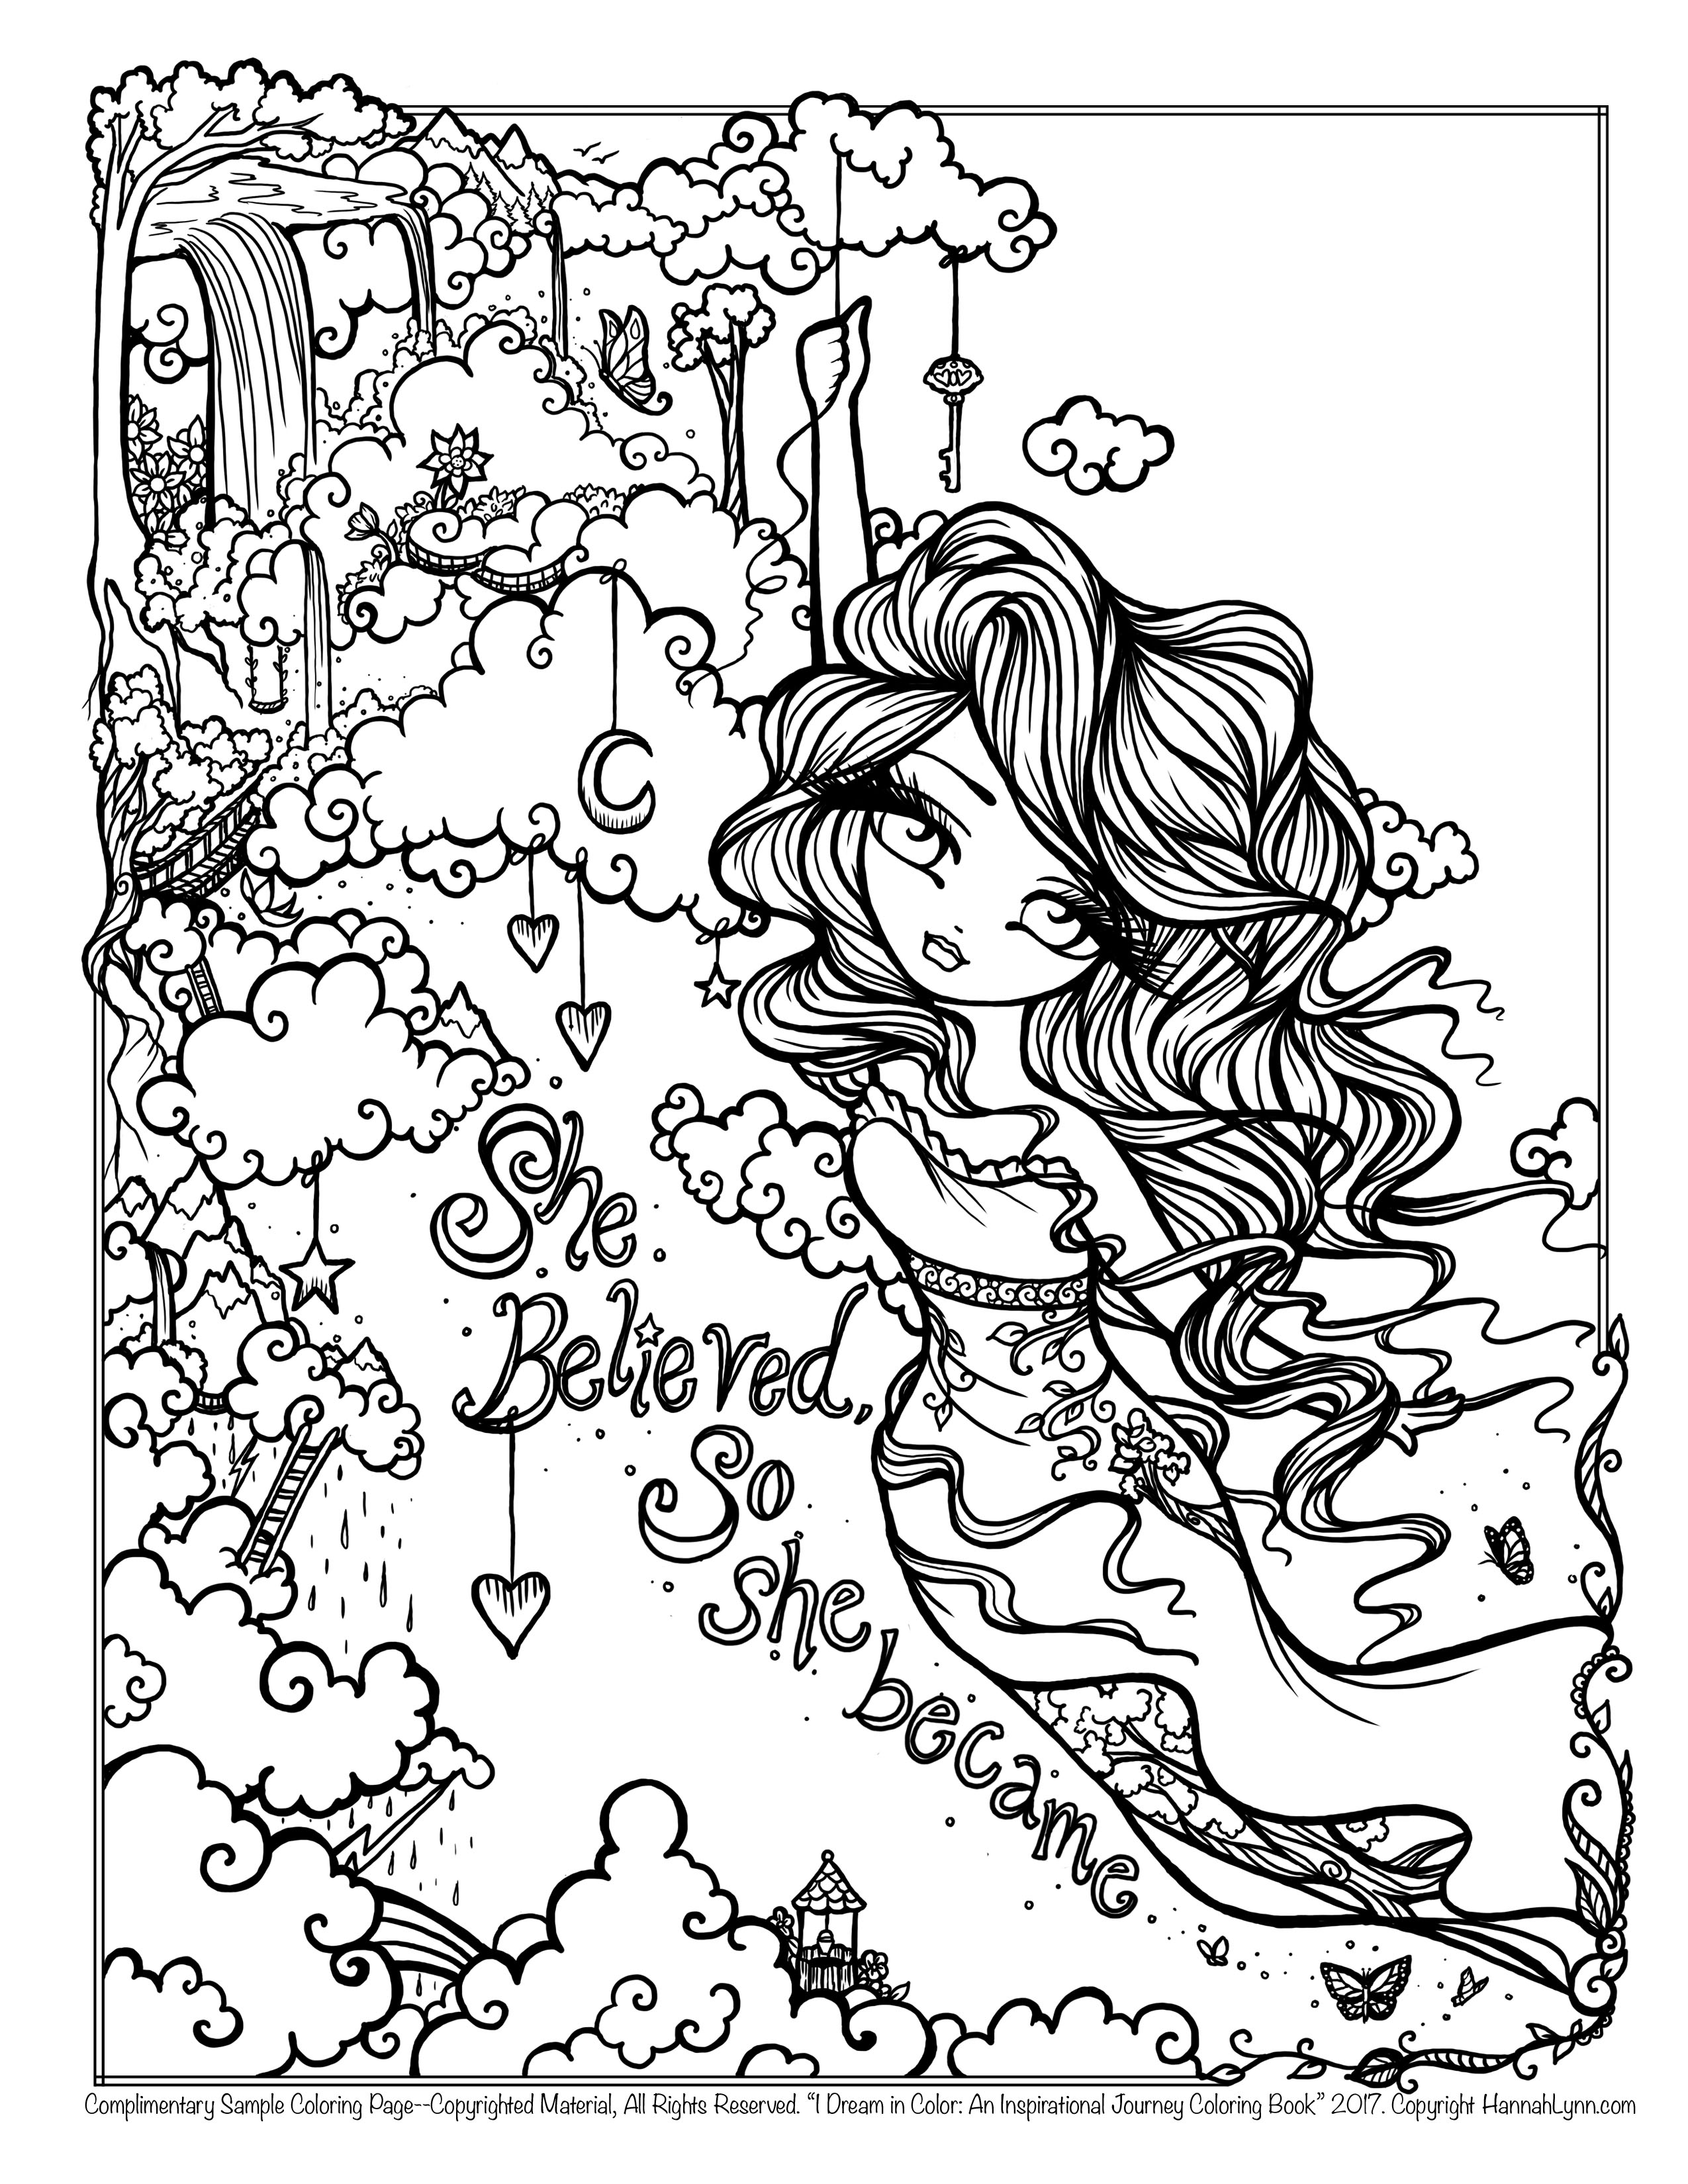 journey girl coloring pages - photo#18